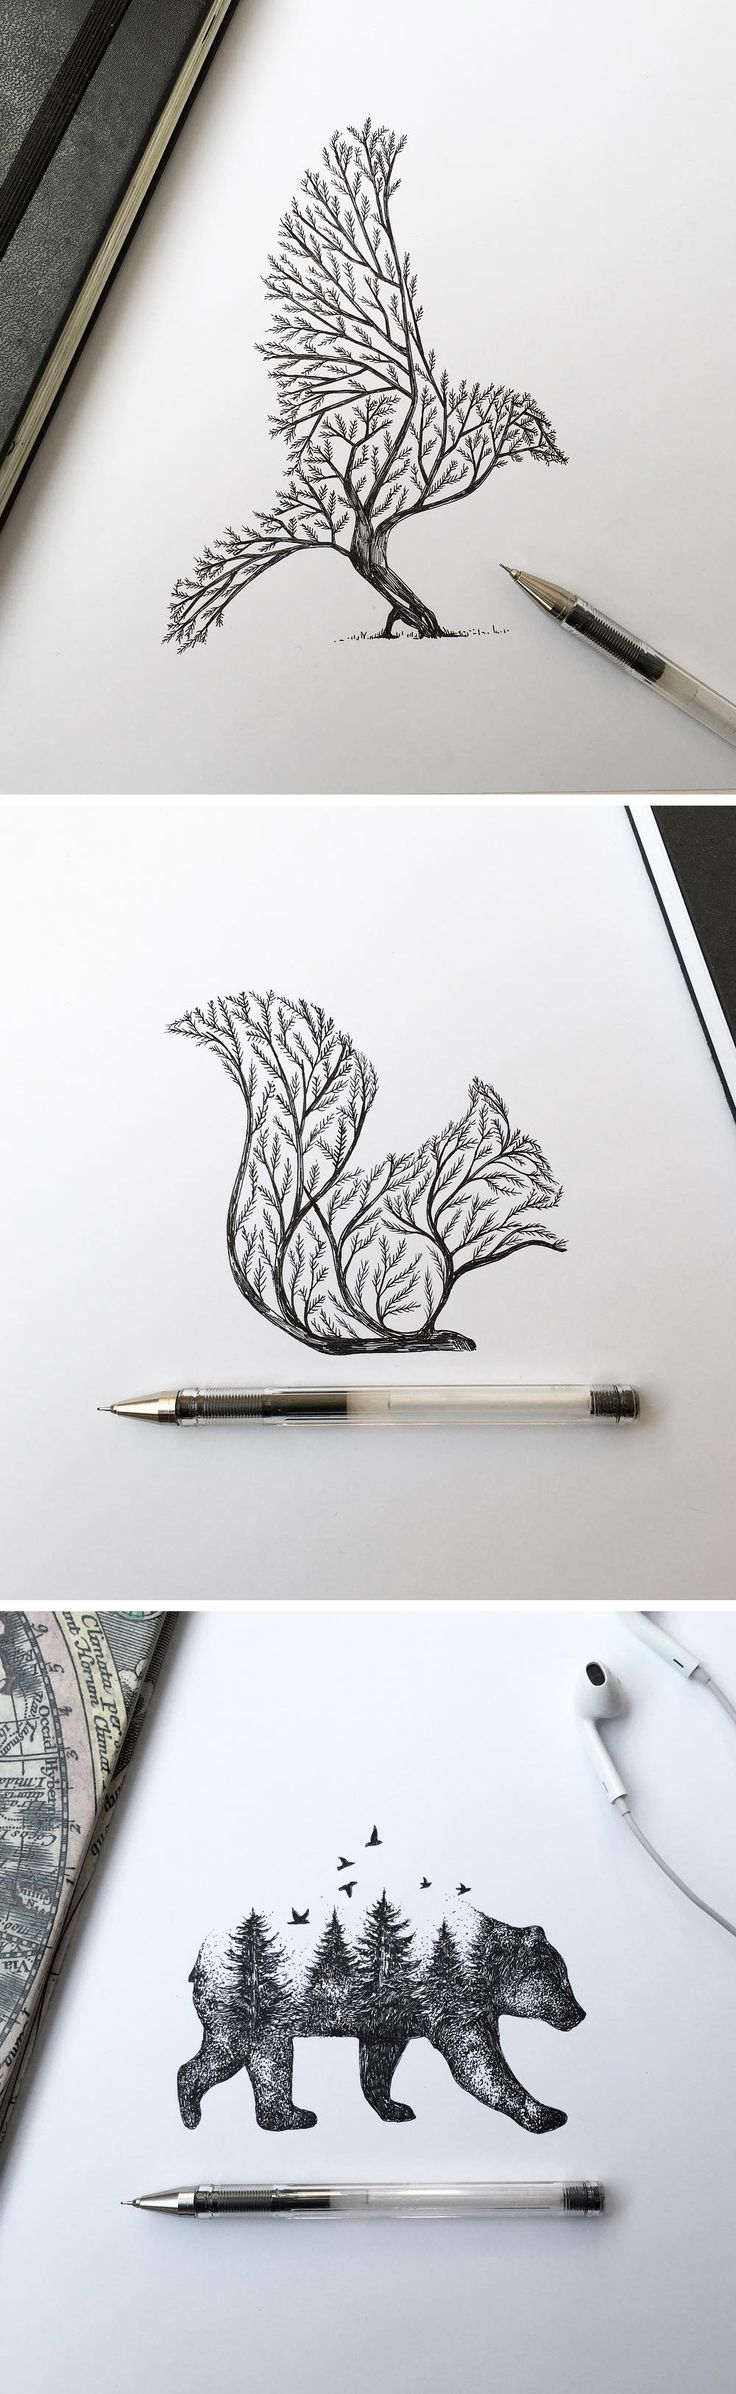 Pen & Ink Depictions of Trees Sprouting into Animals by Alfred Basha…